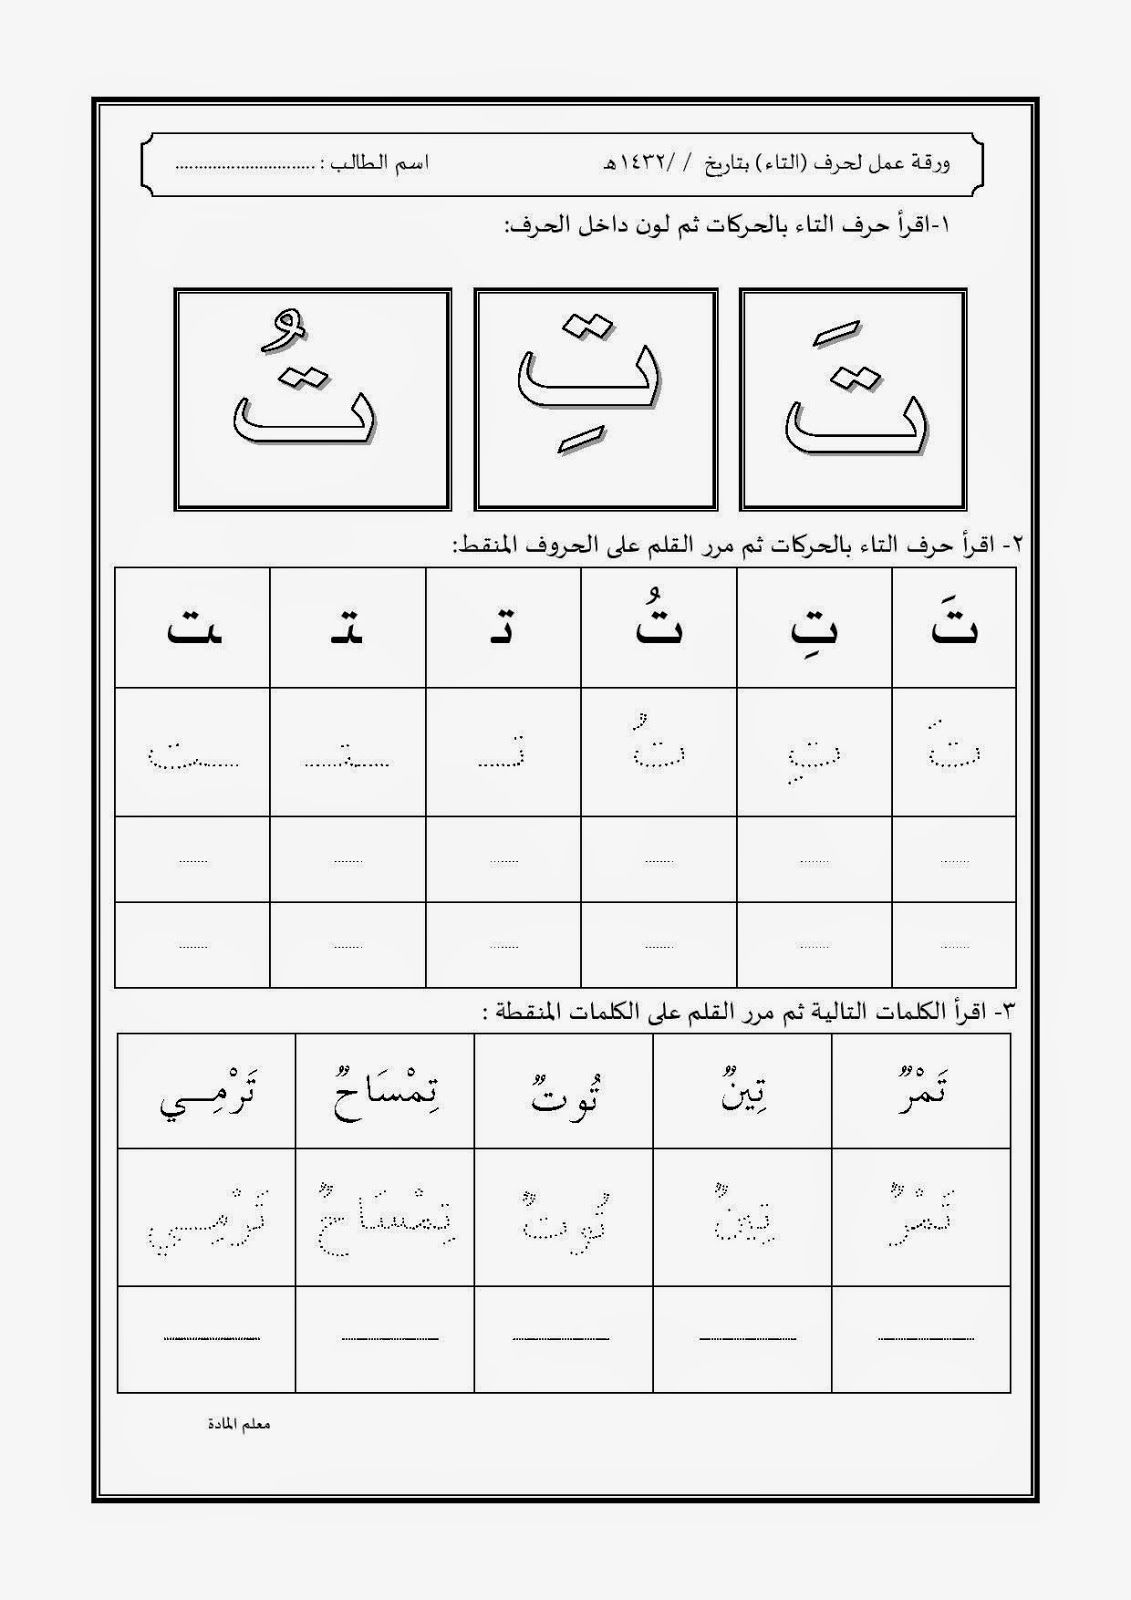 ورقه عمل جميع الحروف Page 003 Jpg 1 131 1 600 Pixels Learn Arabic Alphabet Arabic Alphabet For Kids Learning Arabic